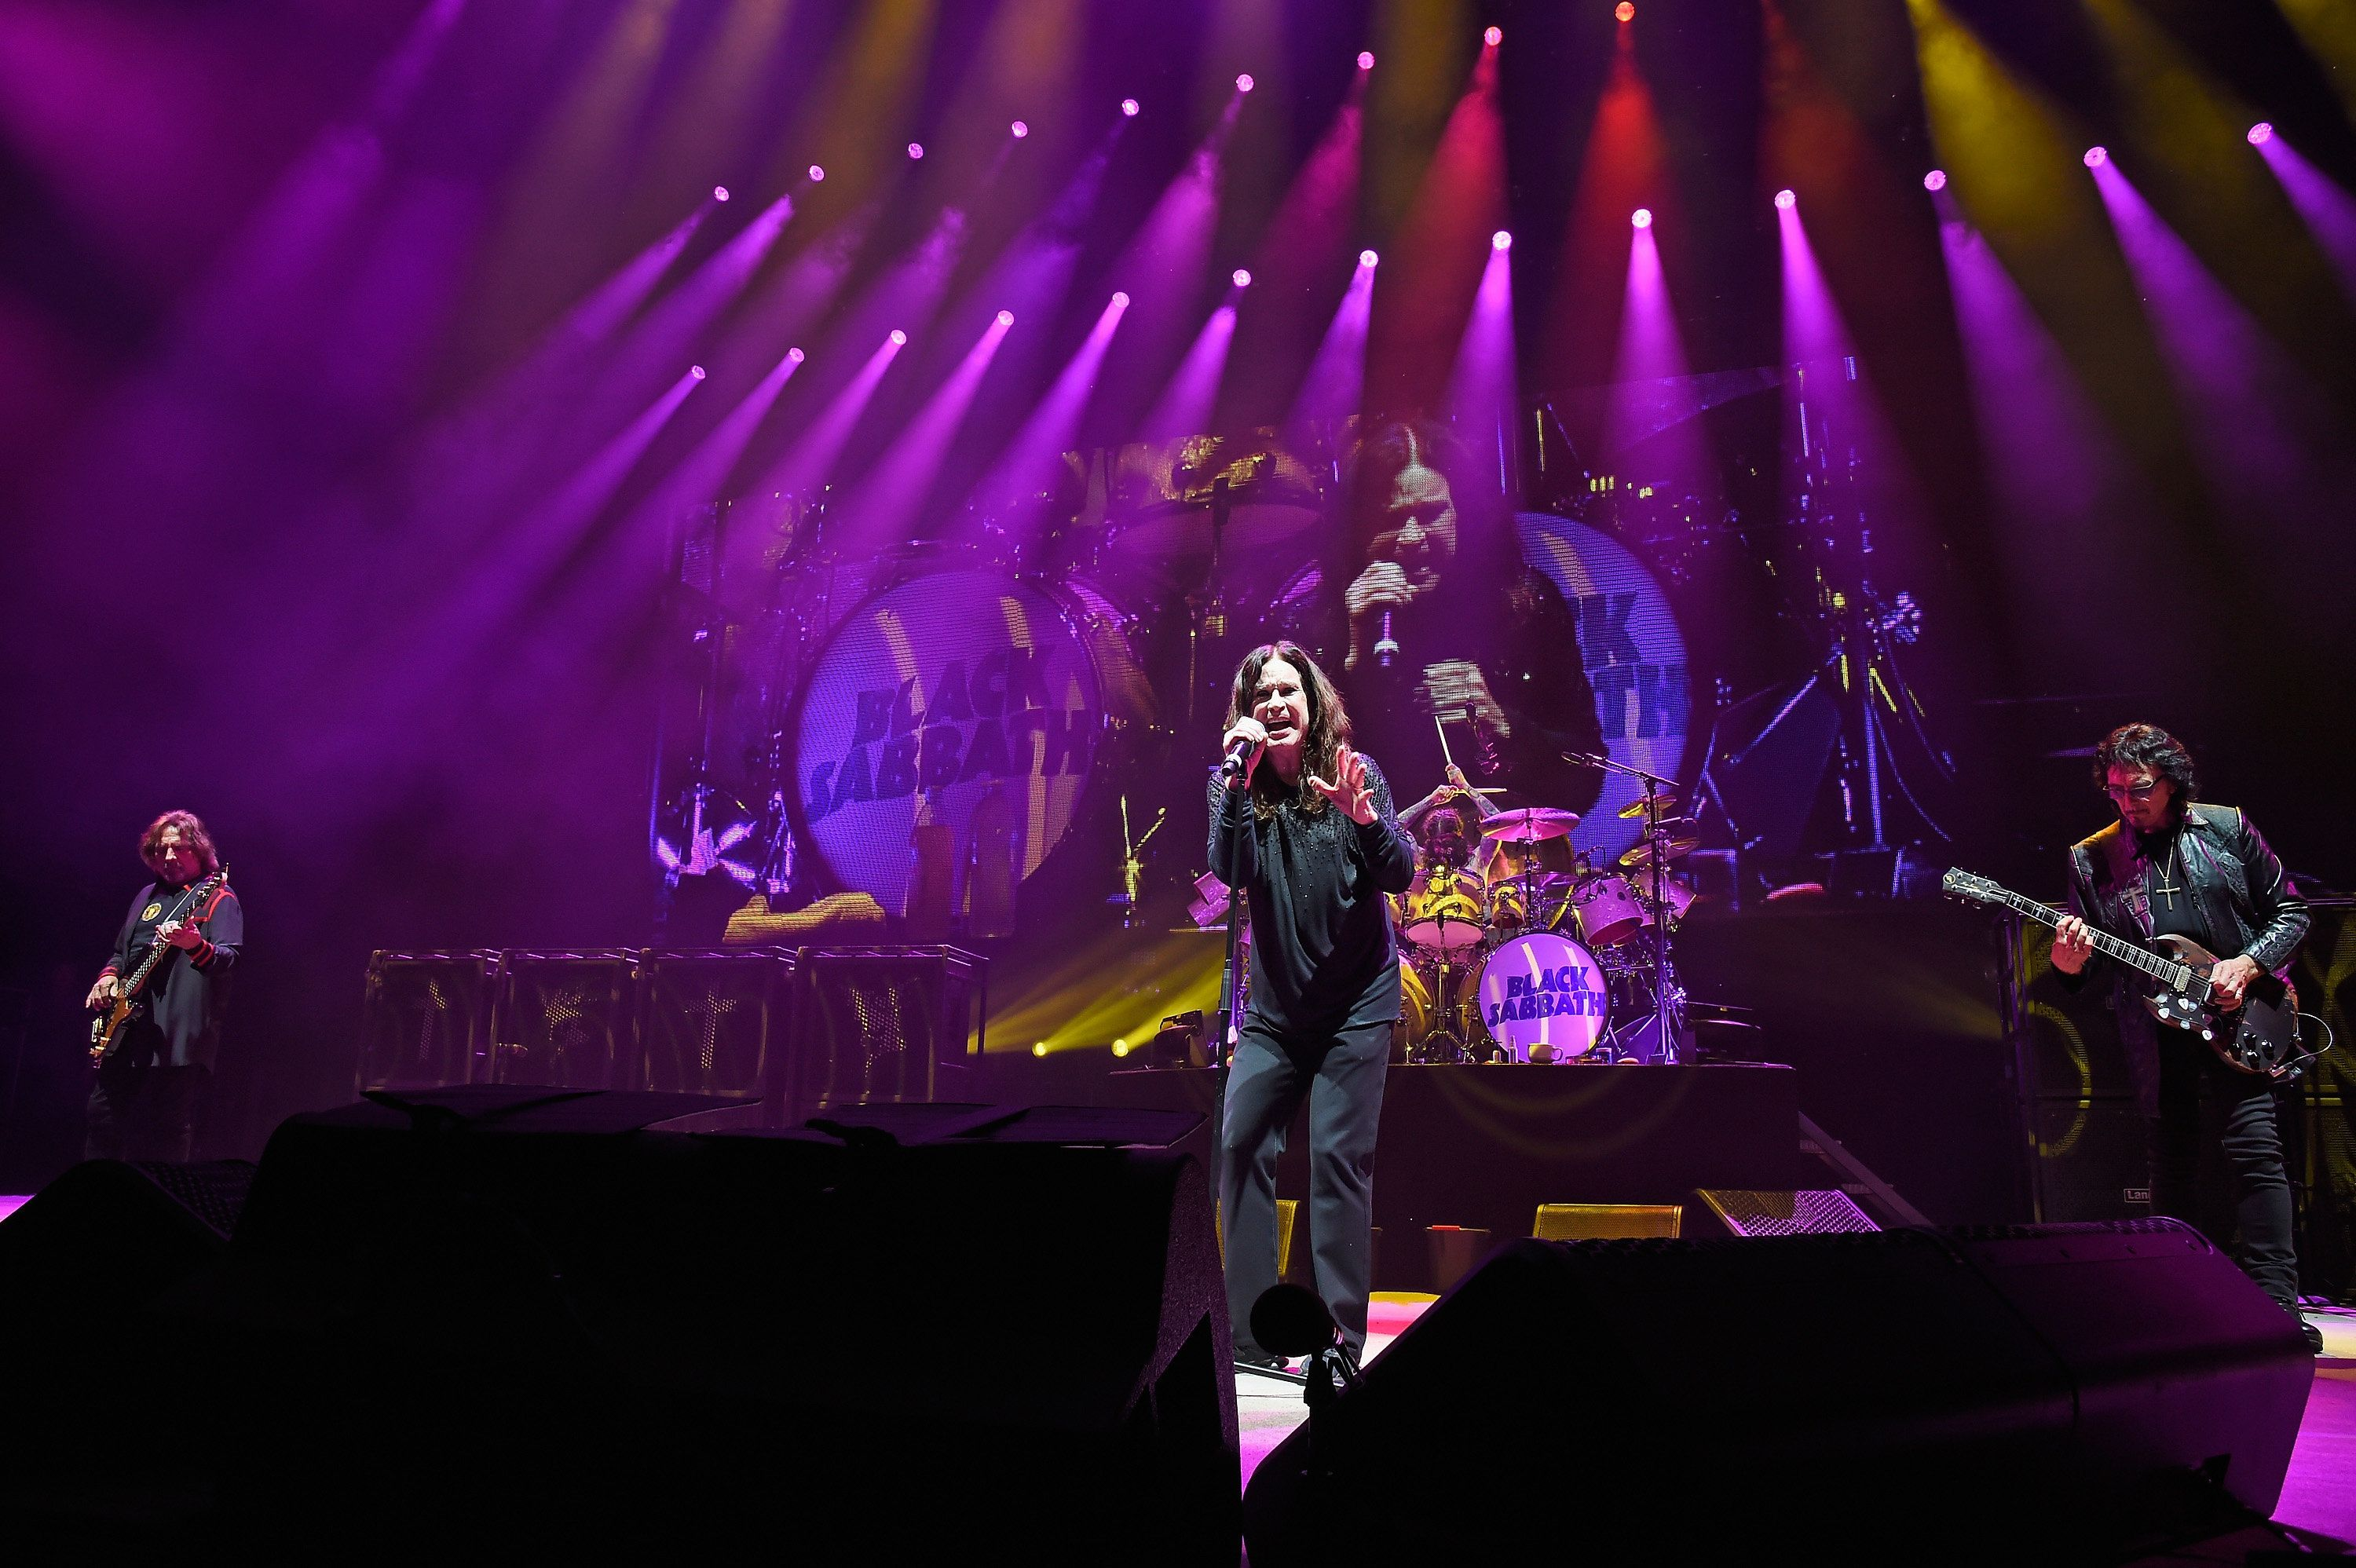 WANTAGH, NY - AUGUST 17:  (L-R) Geezer Butler, Ozzy Osbourne, Tommy Clufetos, and Tony Iommi perform onstage as Black Sabbath on 'The End Tour' at Nikon at Jones Beach Theater on August 17, 2016 in Wantagh, New York.  (Photo by Kevin Mazur/WireImage)